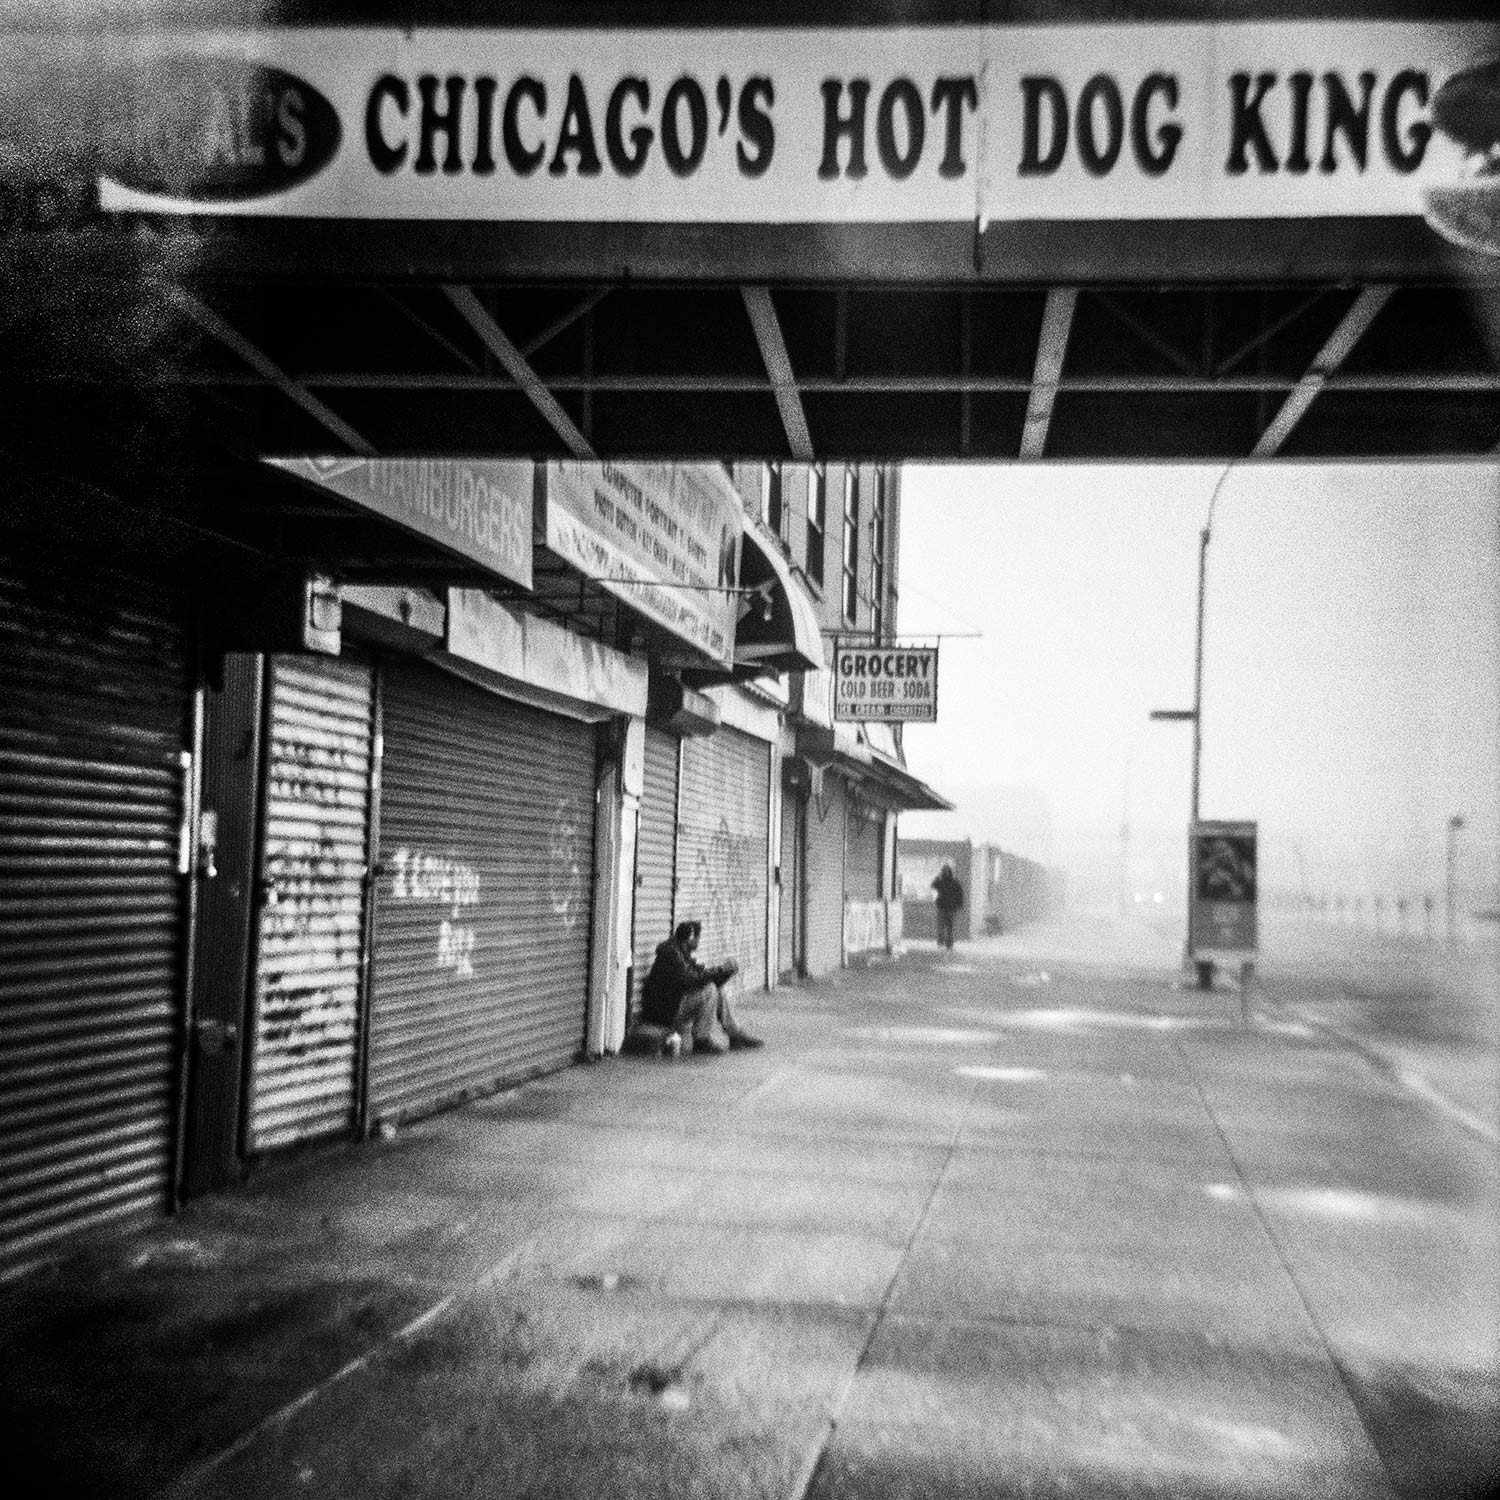 Chicago Hot Dog King - Stefanie Dworkin